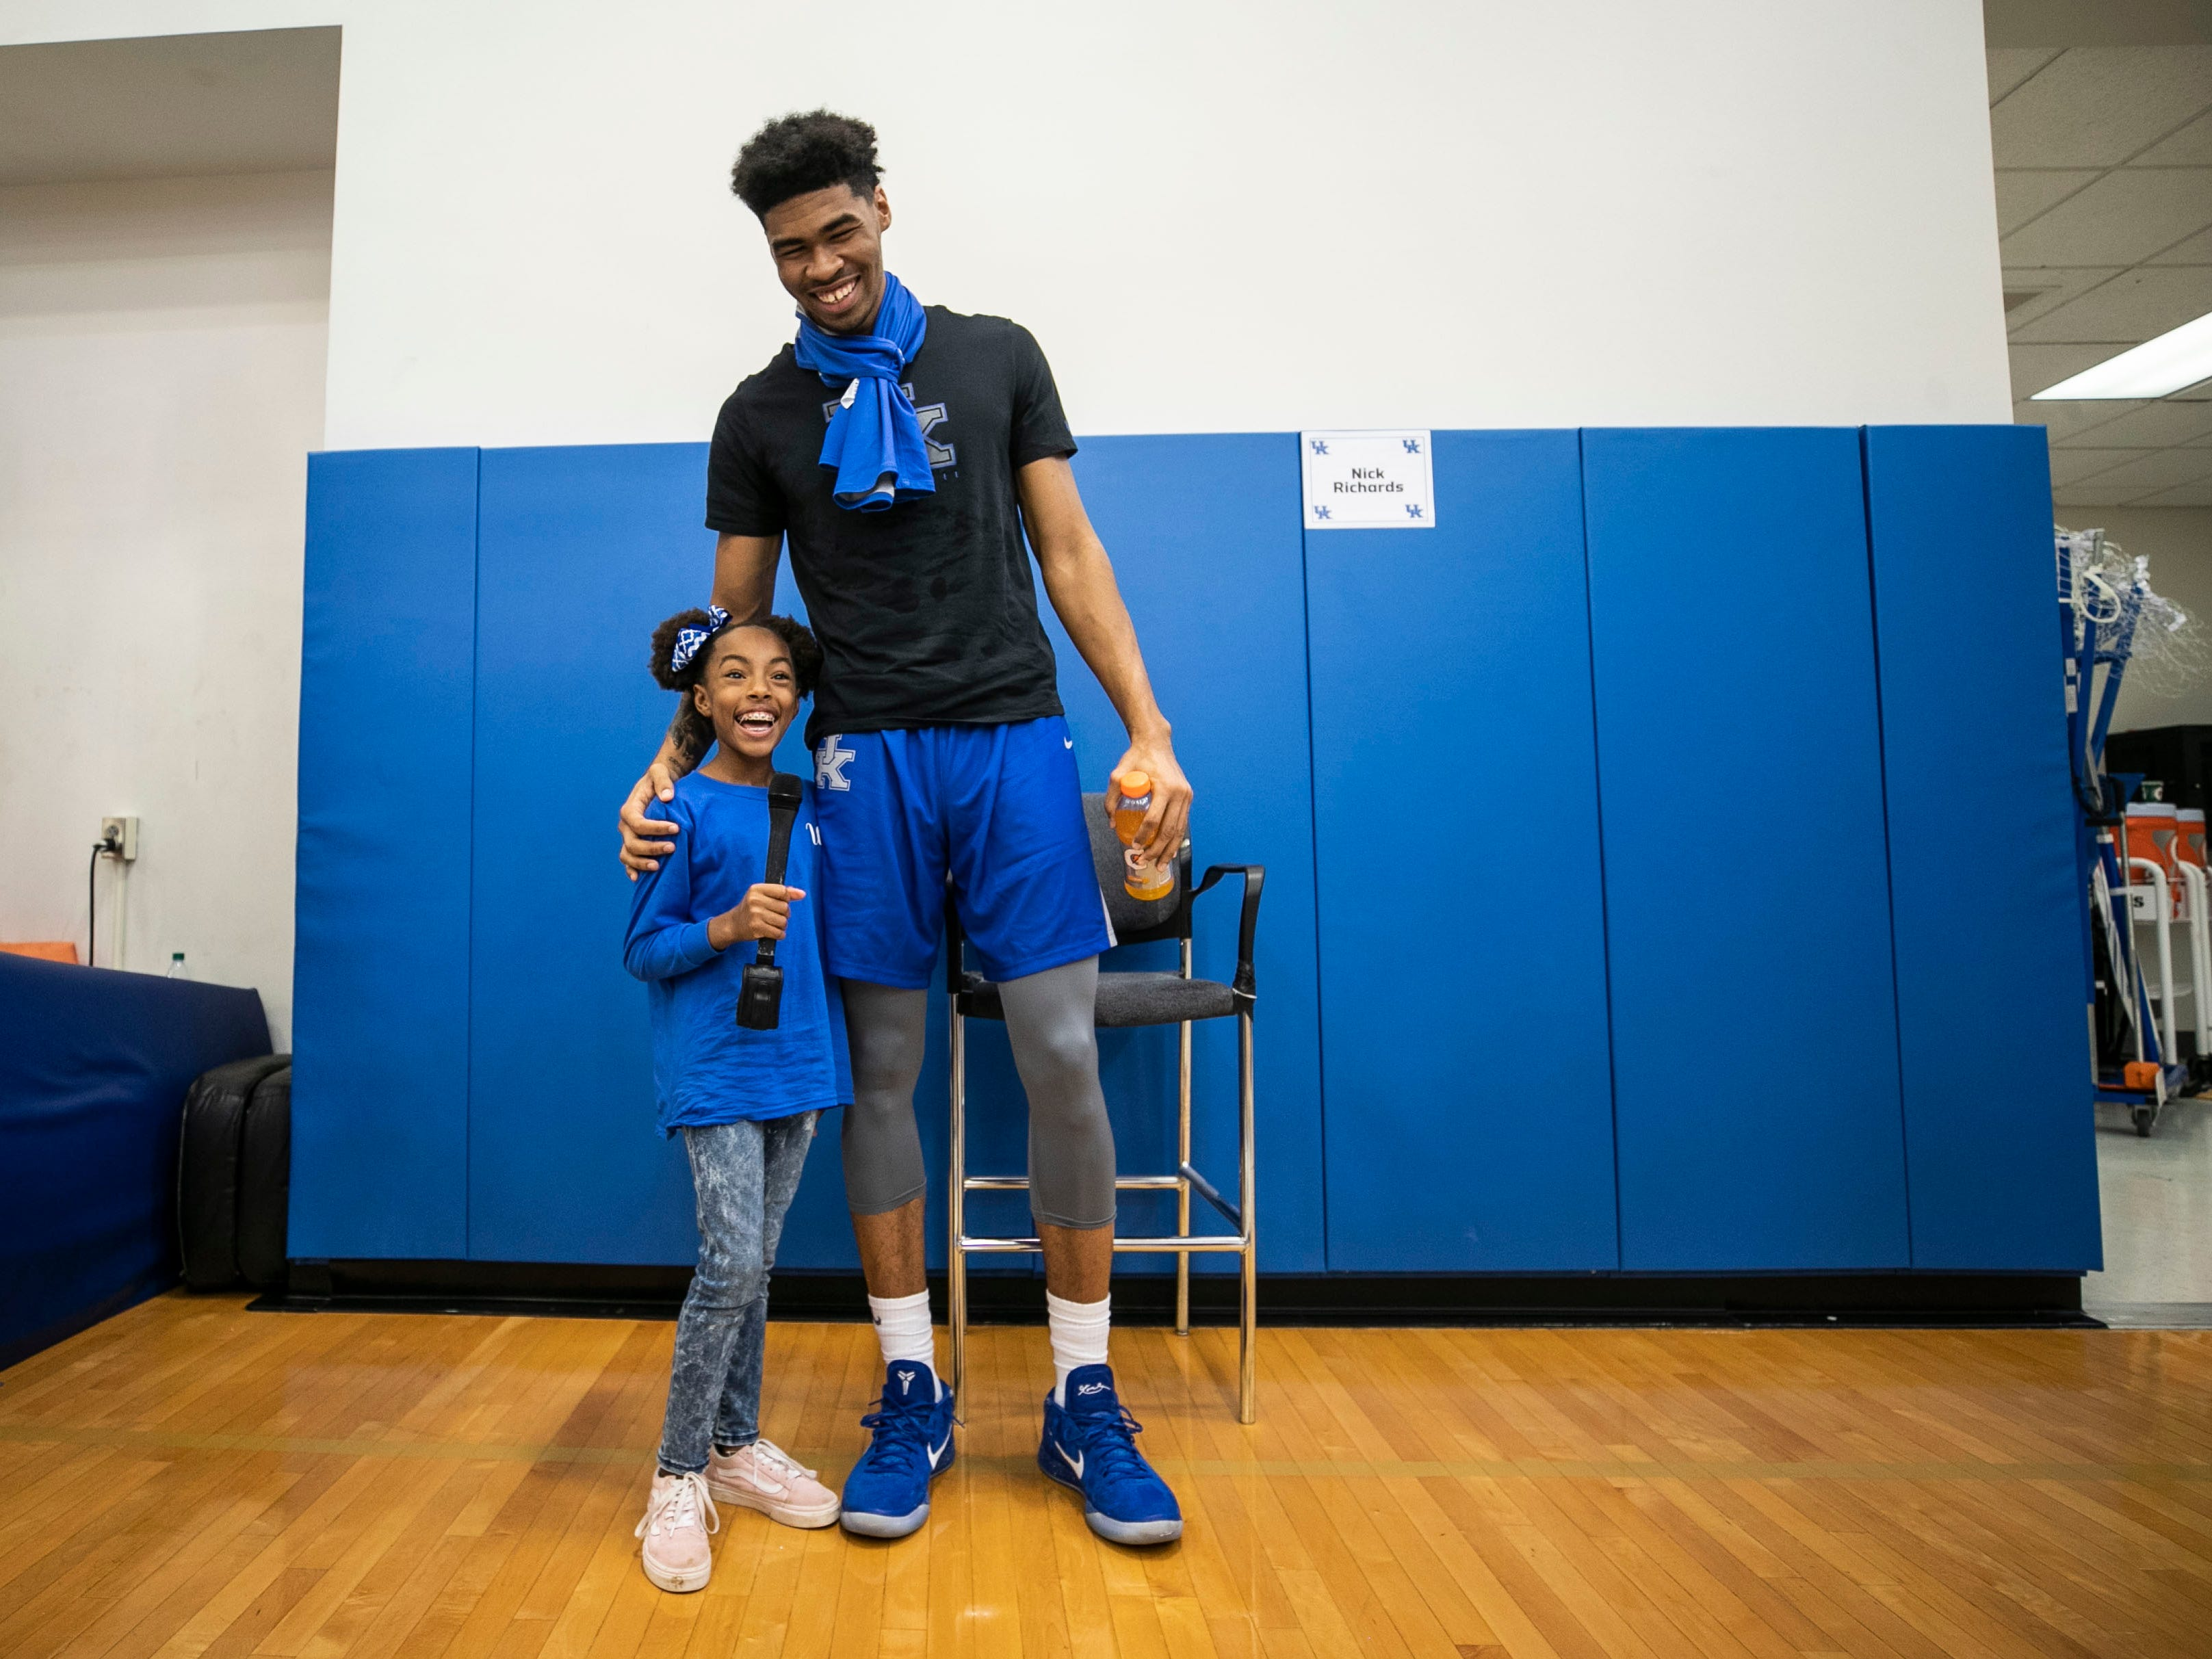 Fifth-grade student Elijah Mayborn, 10, of Lexington smiles with the tallest UK player, Nick Richards, during media day Thursday afternoon